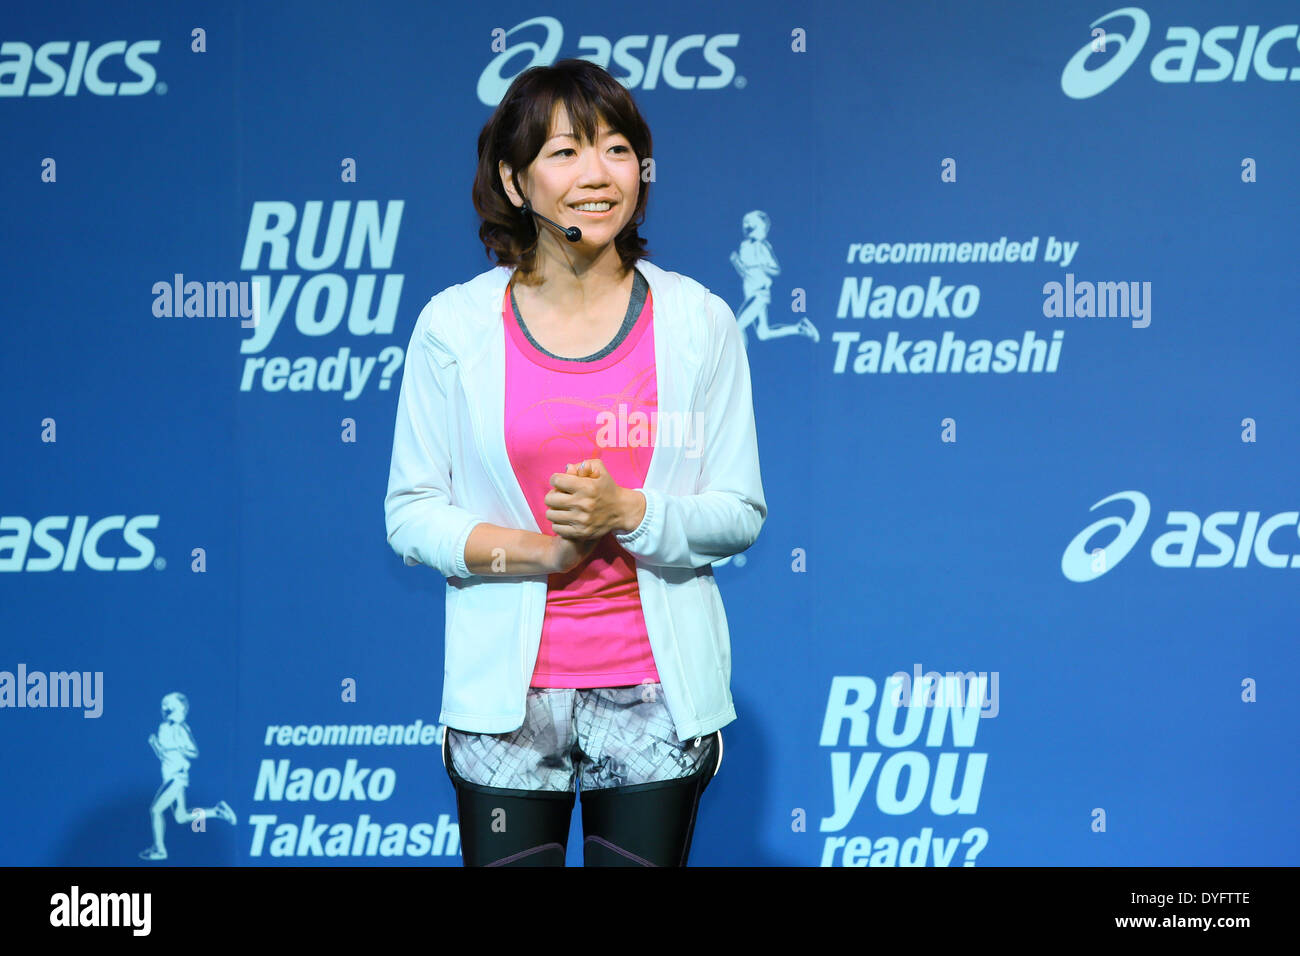 asics stock news